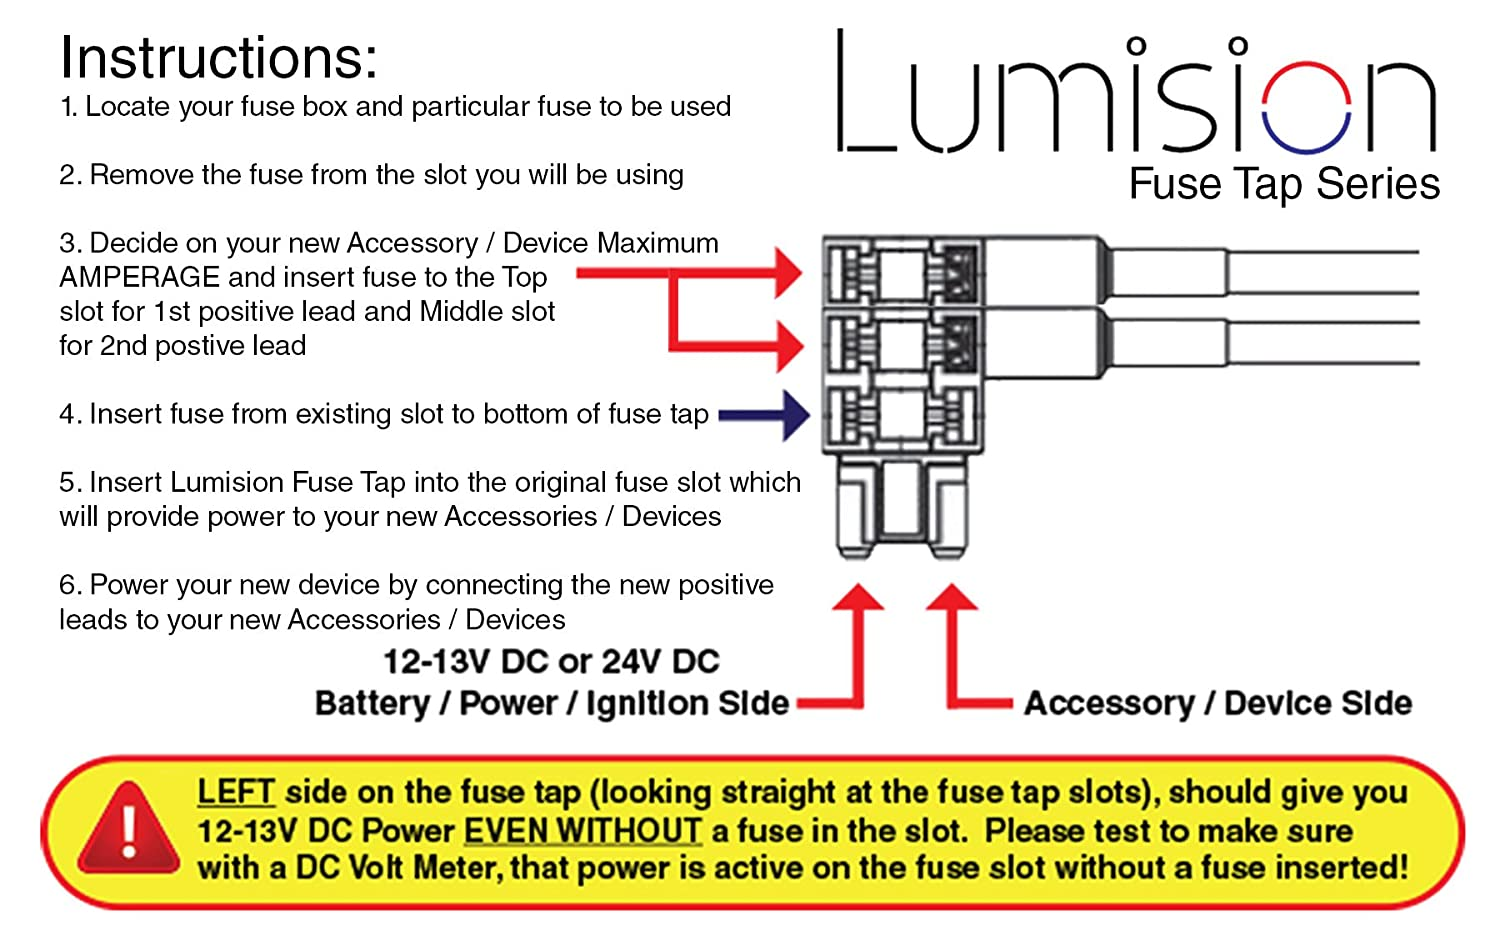 Lumision Dual Fuse Tap Low Profile Lp Mini Aps Att With Box 5 Amp Fuses Automotive Boat Rv 2 Leads Adds Positive Lines Add A Circuit